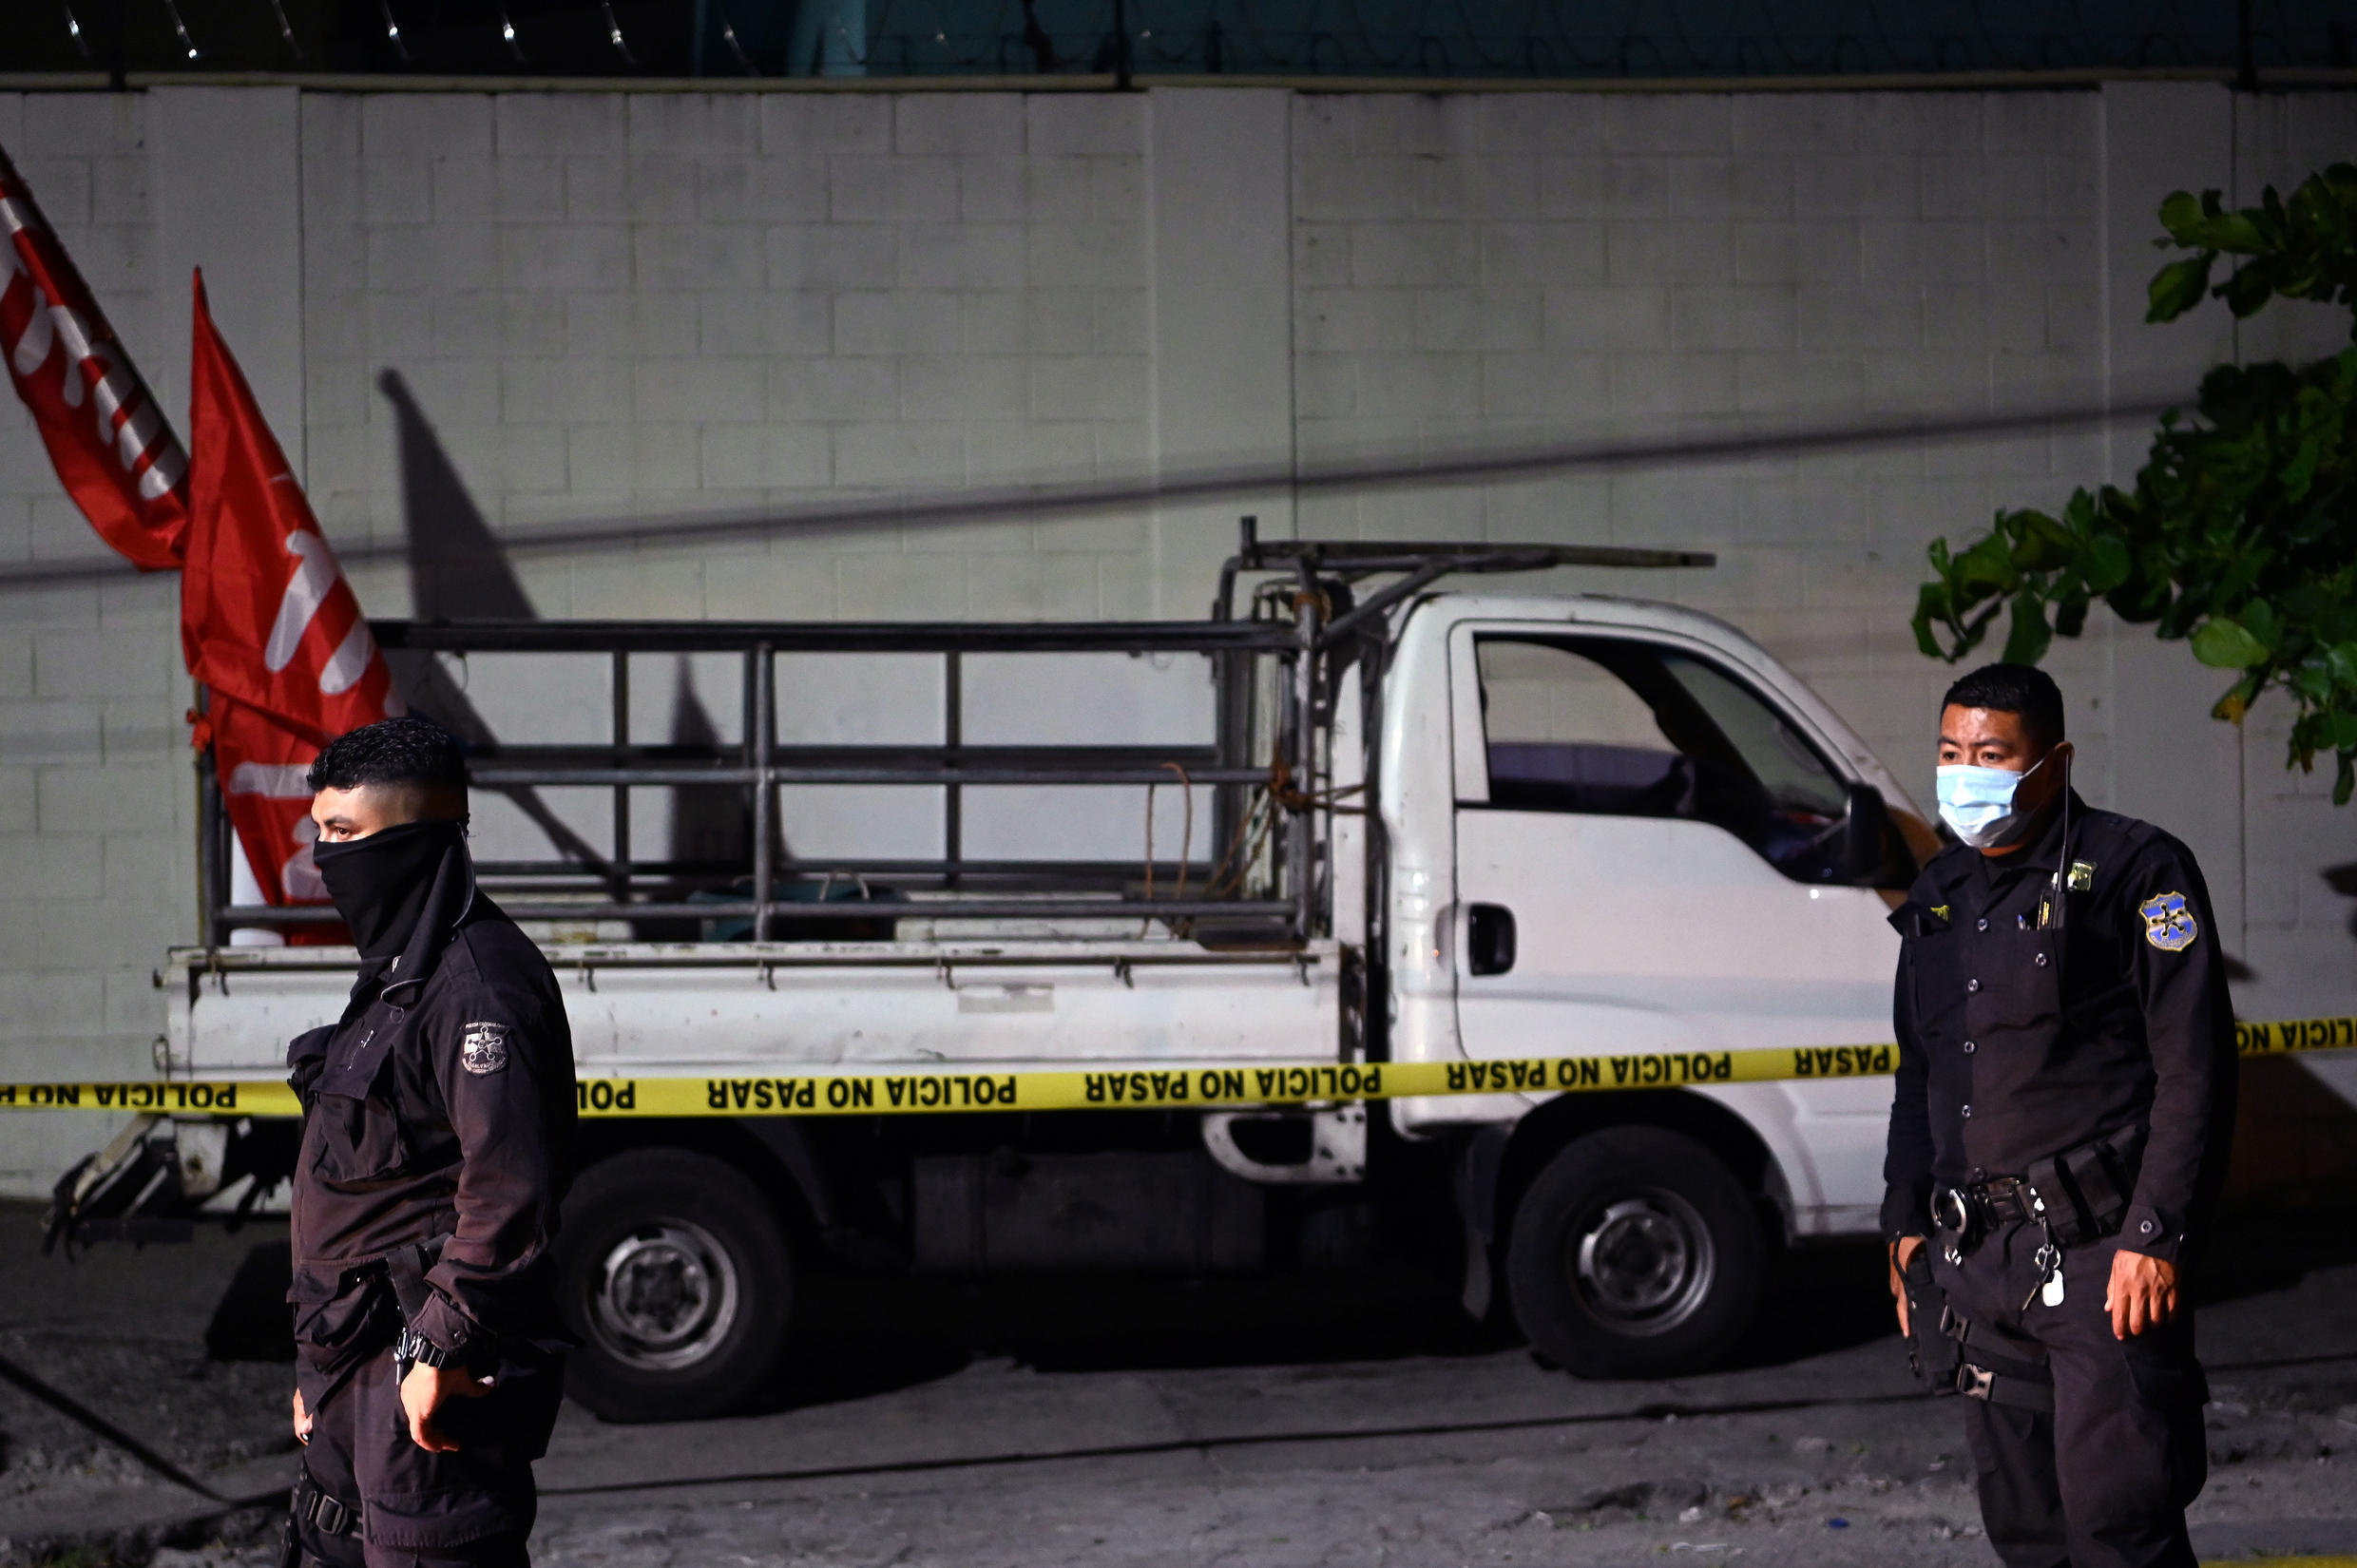 Two activists were killed and five wounded in El Salvador's capital on Sunday after an assailant opened fire on members of the leftist FMLN party